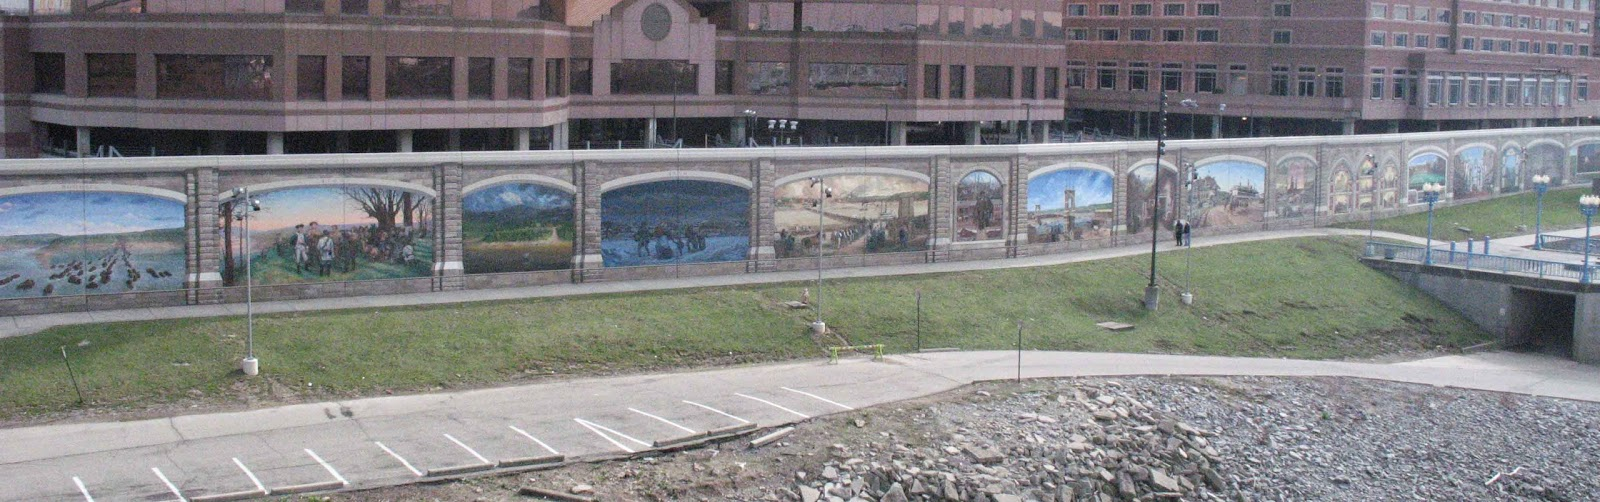 The Floodwall Murals In Covington, Kentucky, Face Cincinnati Across The Ohio  River. Photo: Trudy E. Bell, 2009 Part 34